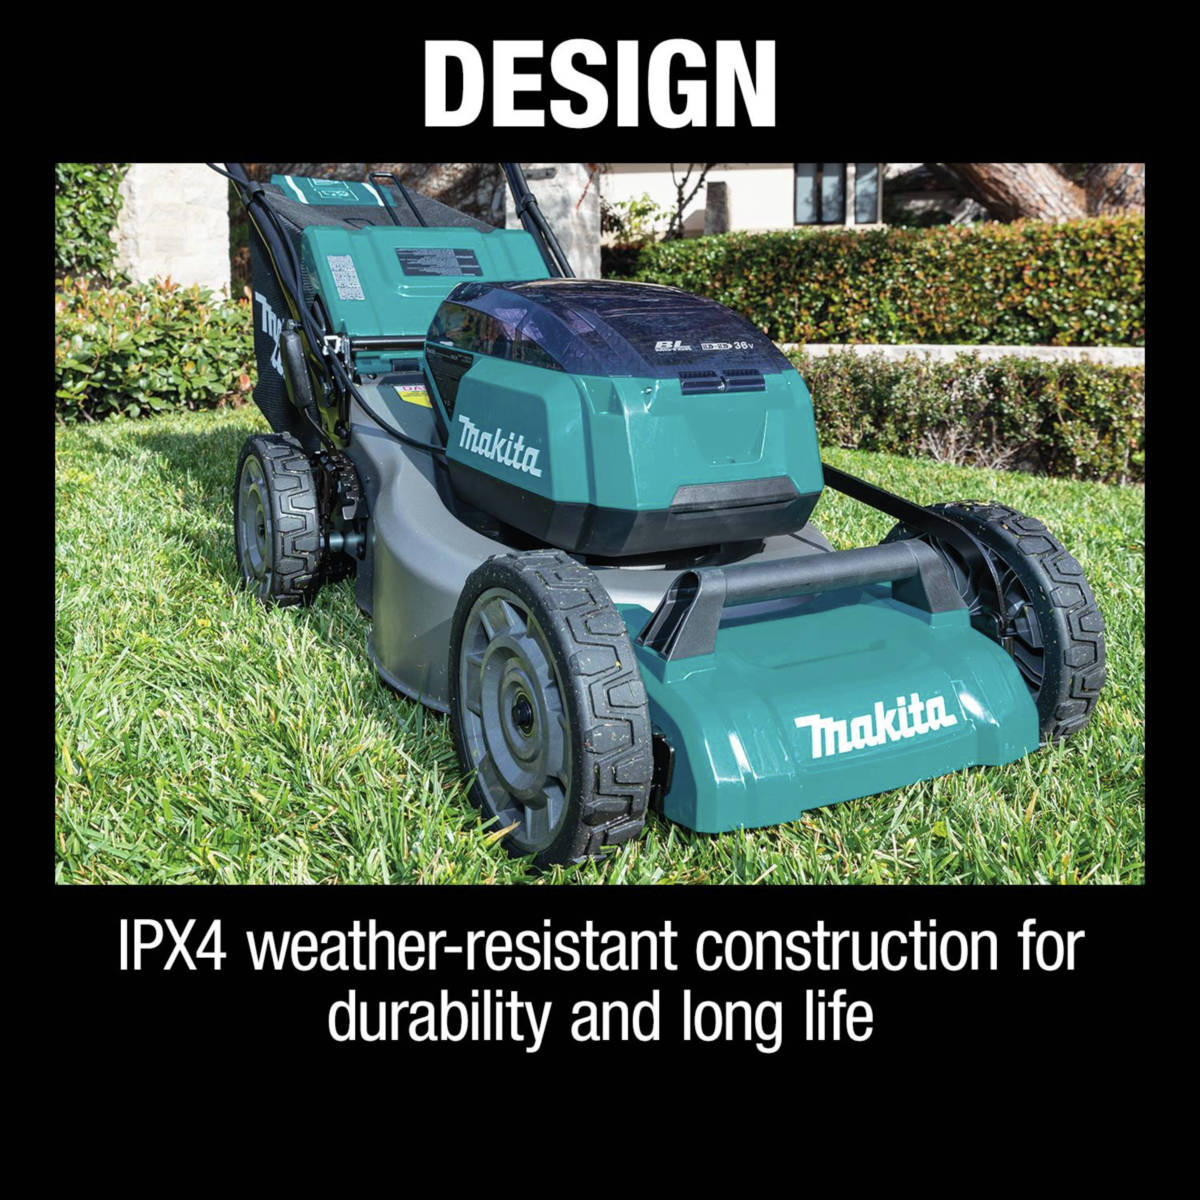 18V X2 (36V) LXT Lawn Mower is self propelled with variable speed